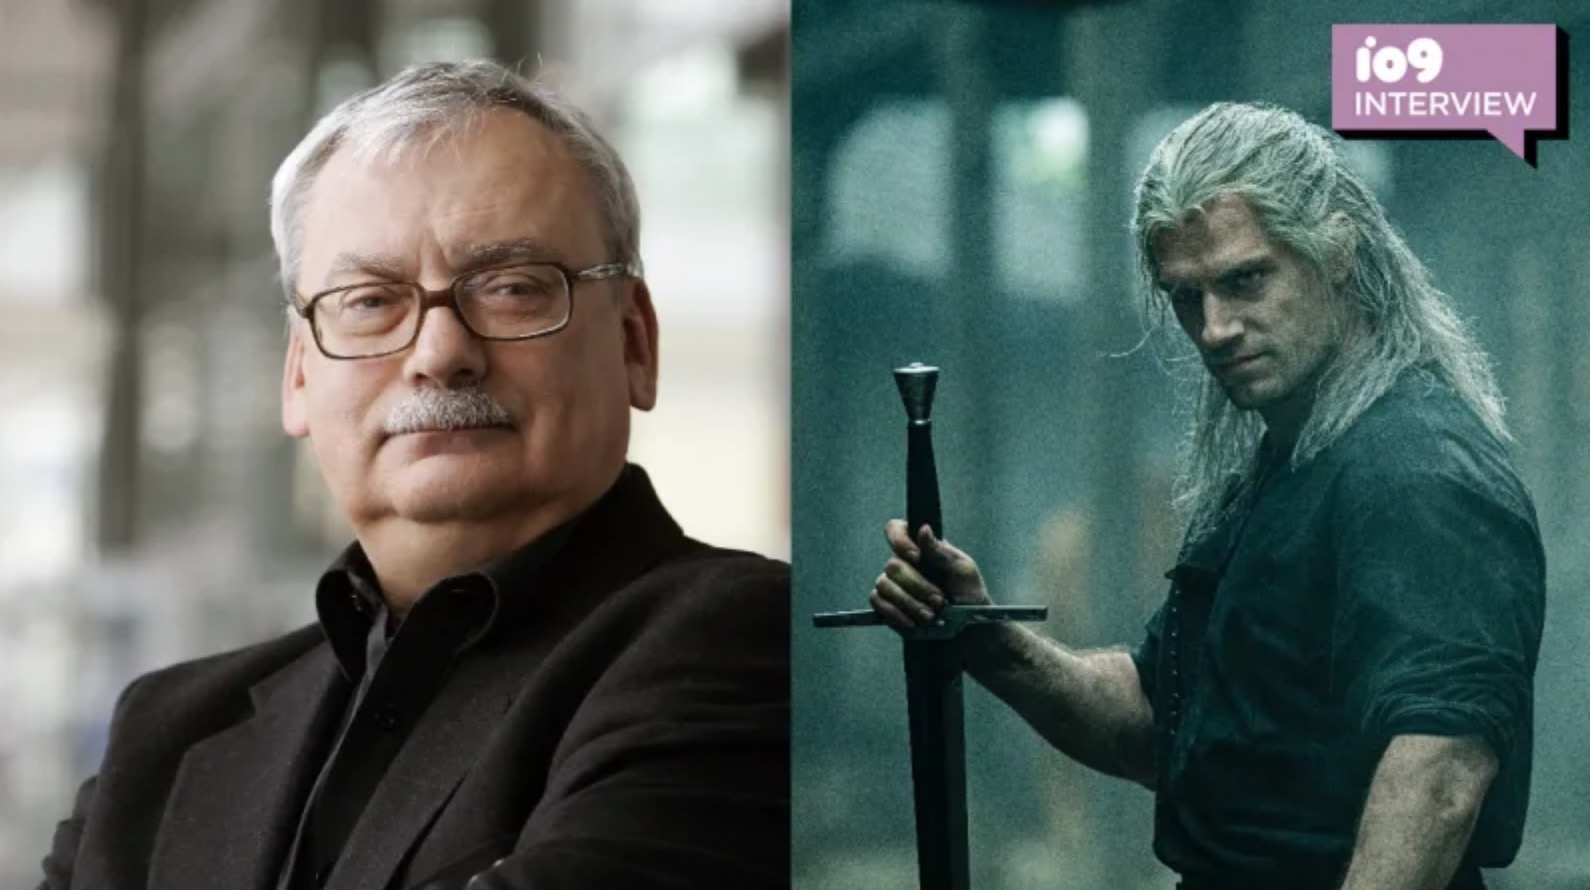 'I Do Not Like Working Too Hard Or Too Long': A Refreshingly Honest Talk With The Witcher's Creator